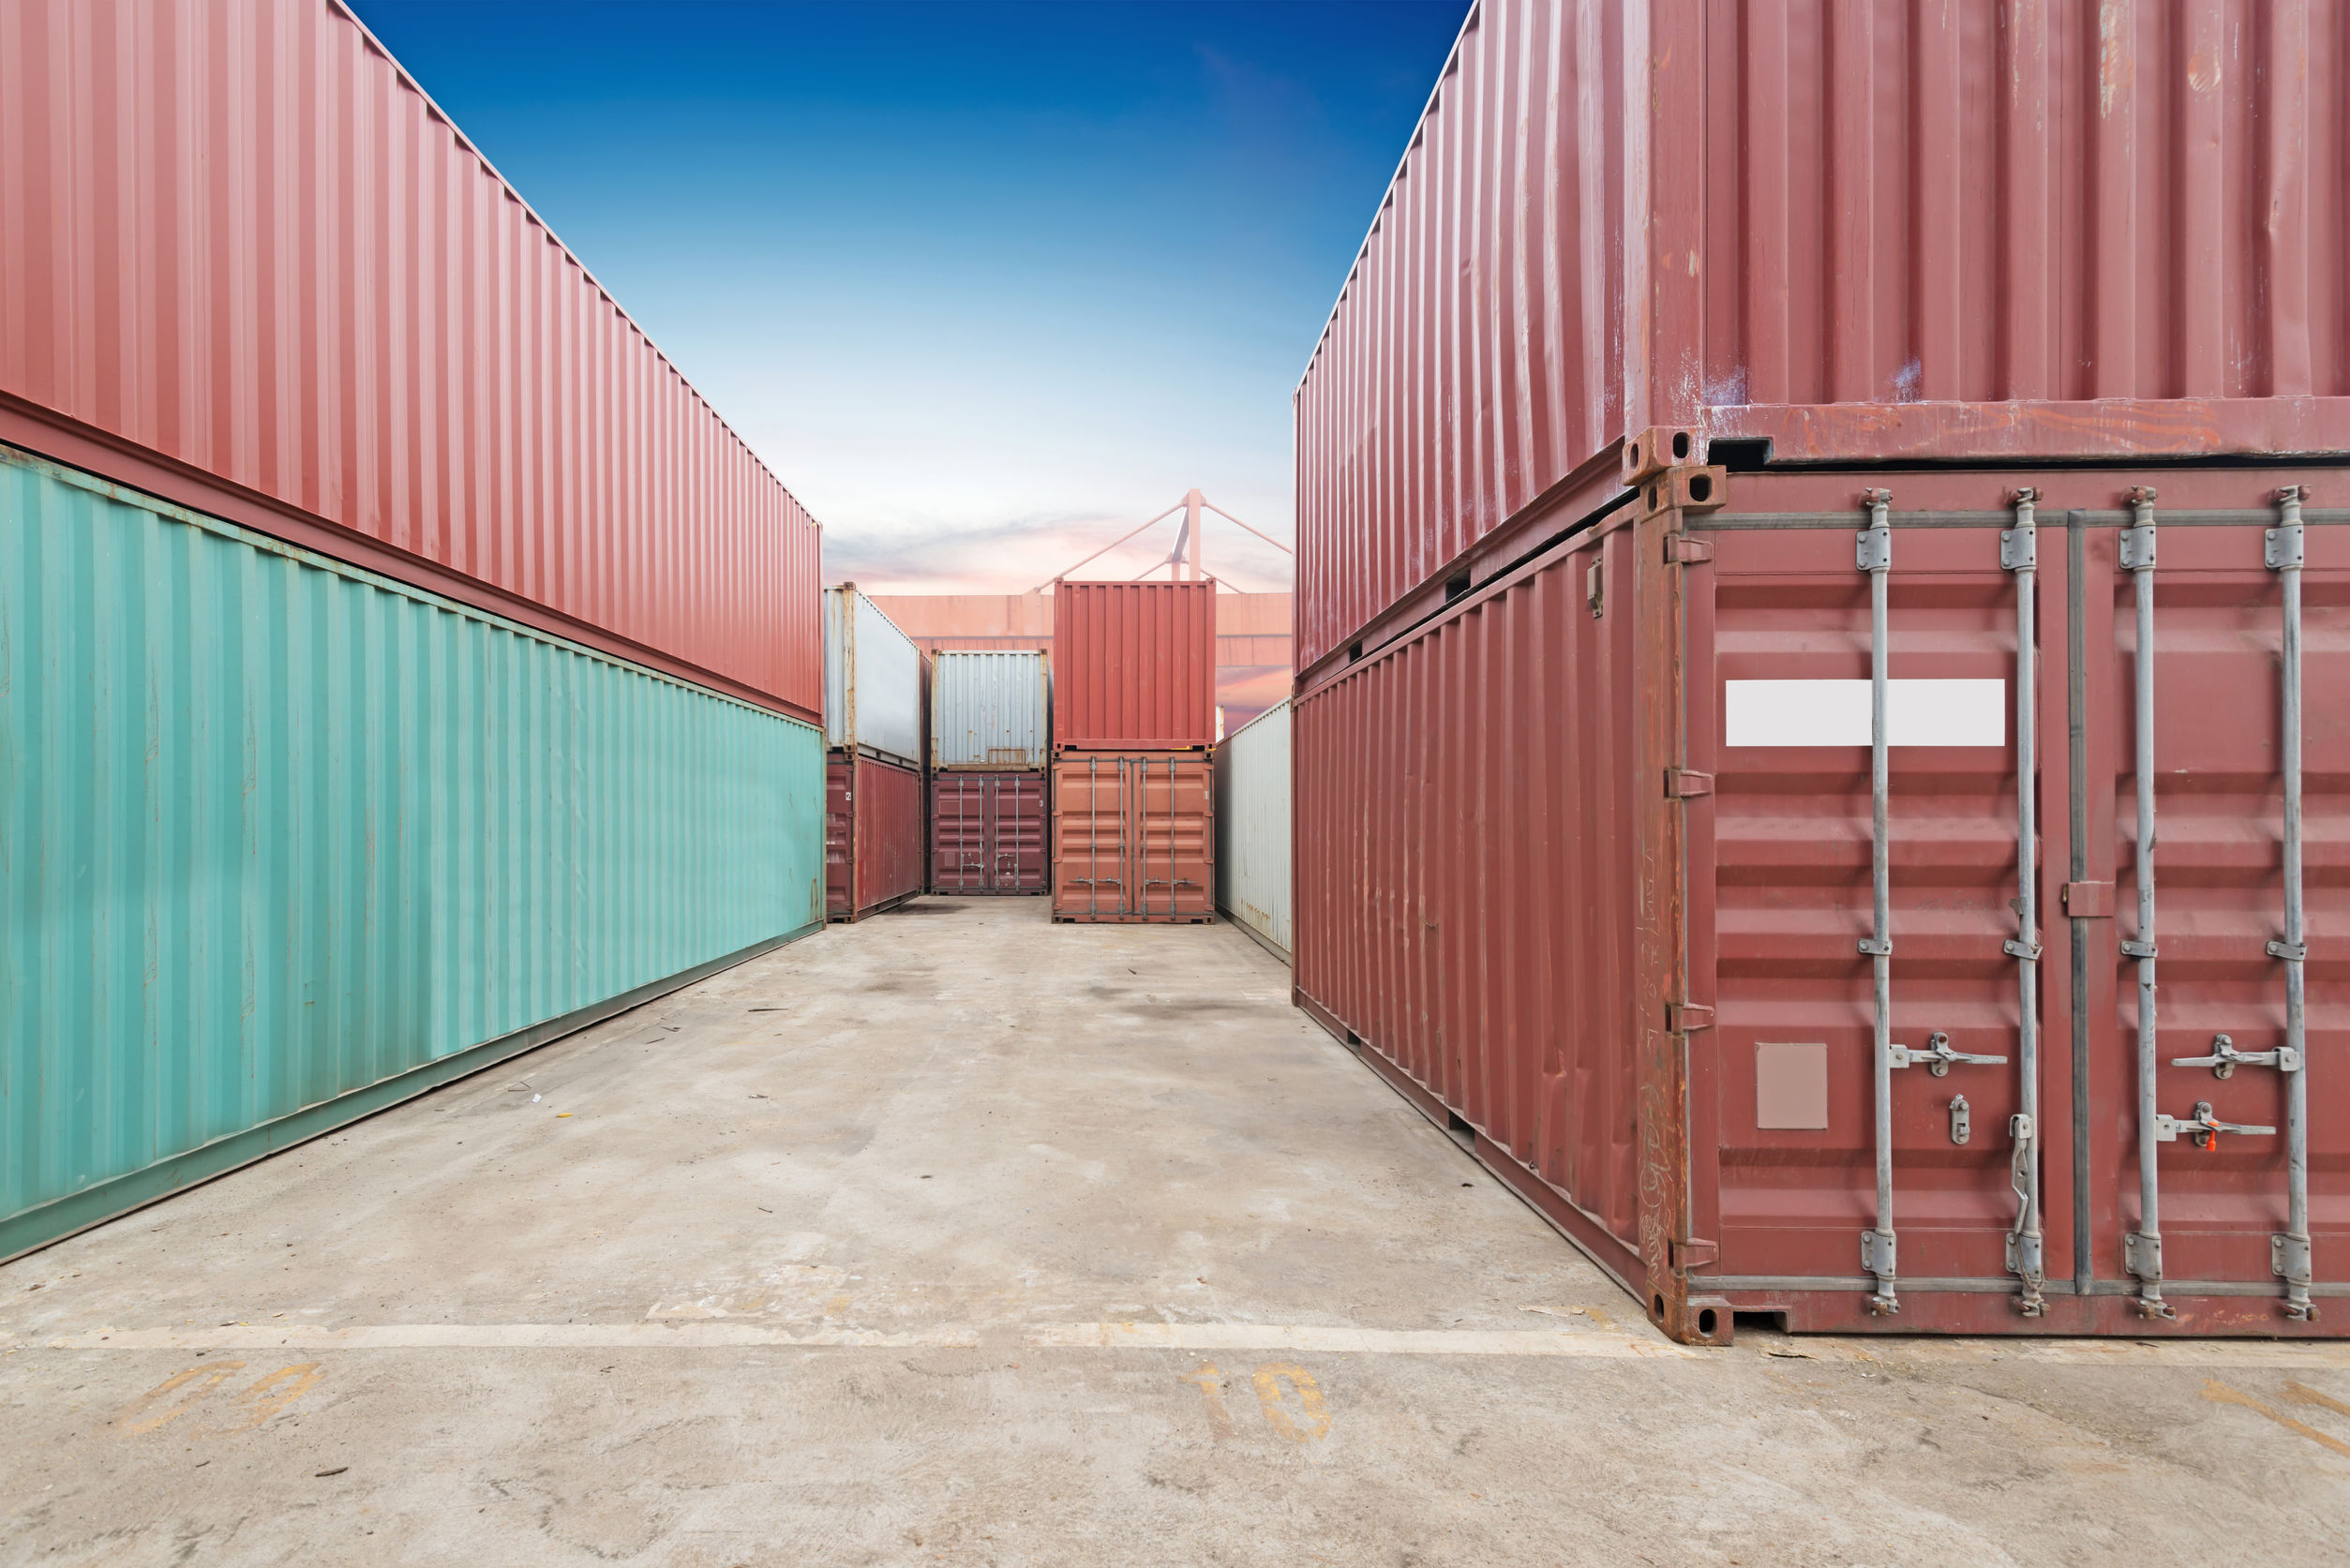 5 Factors To Consider When Renting A Storage Container